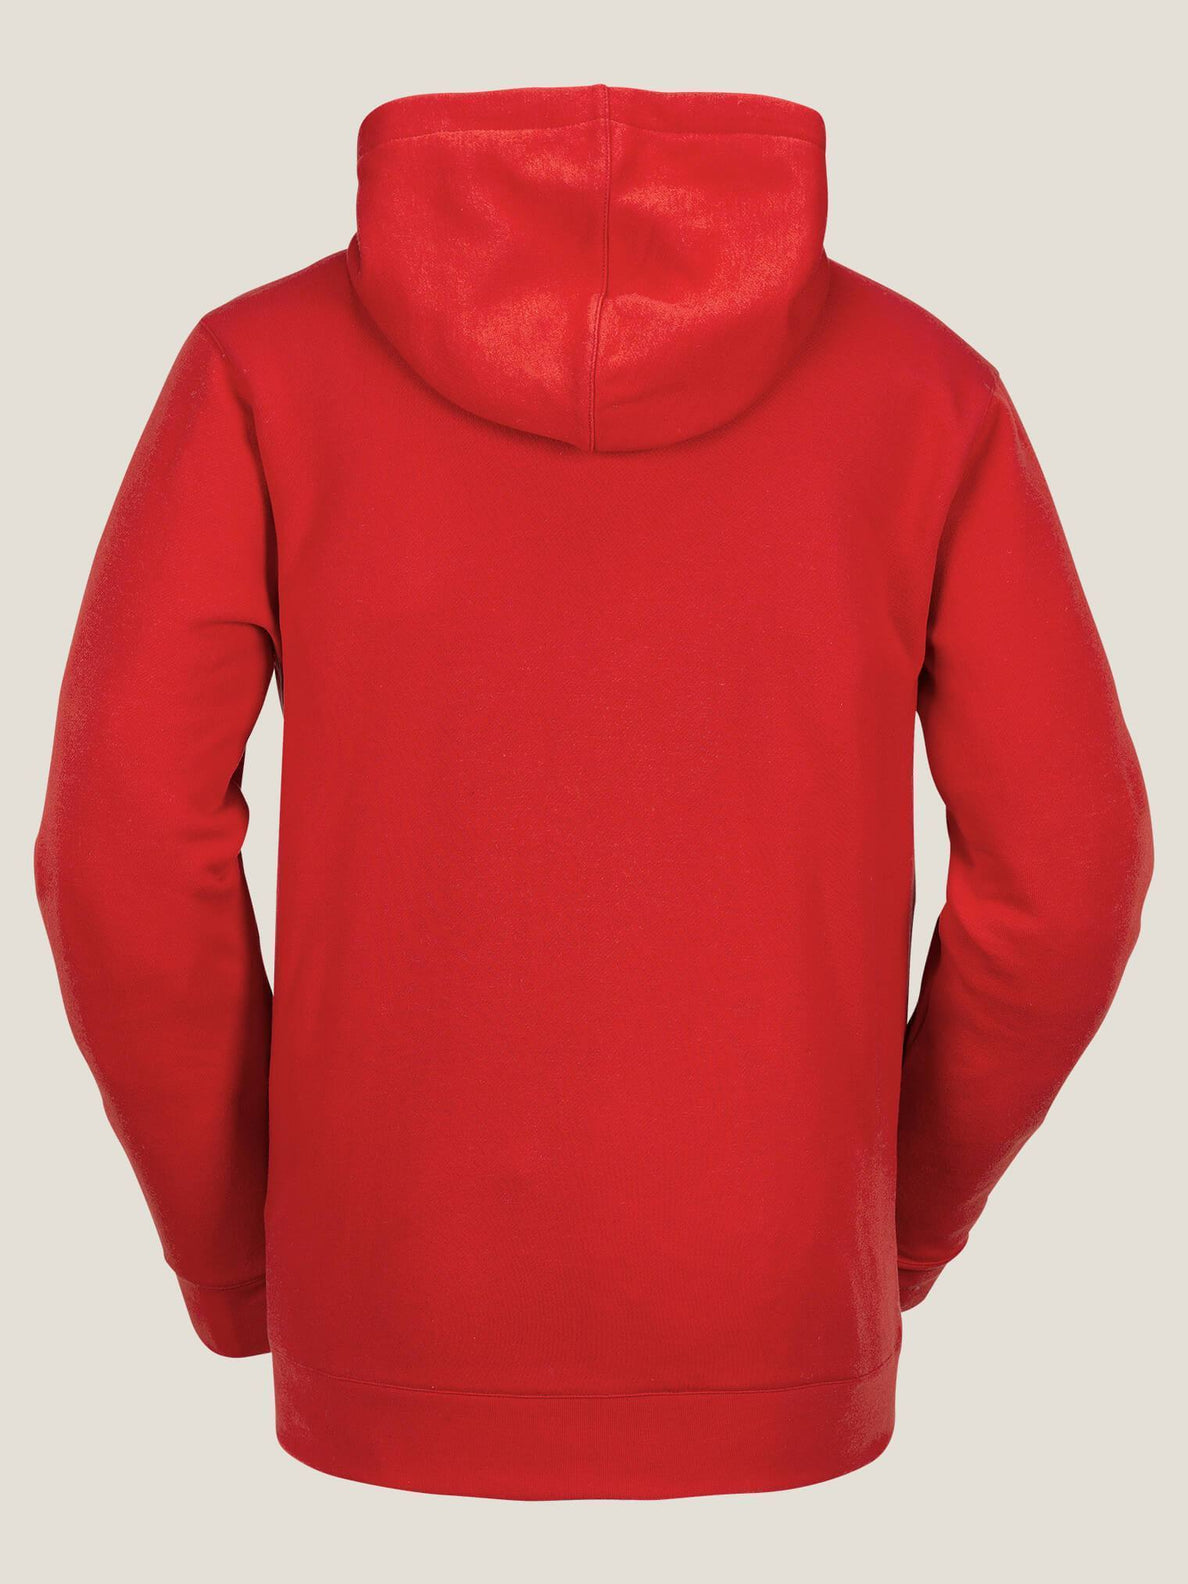 JLA Pullover Fleece - Fire Red